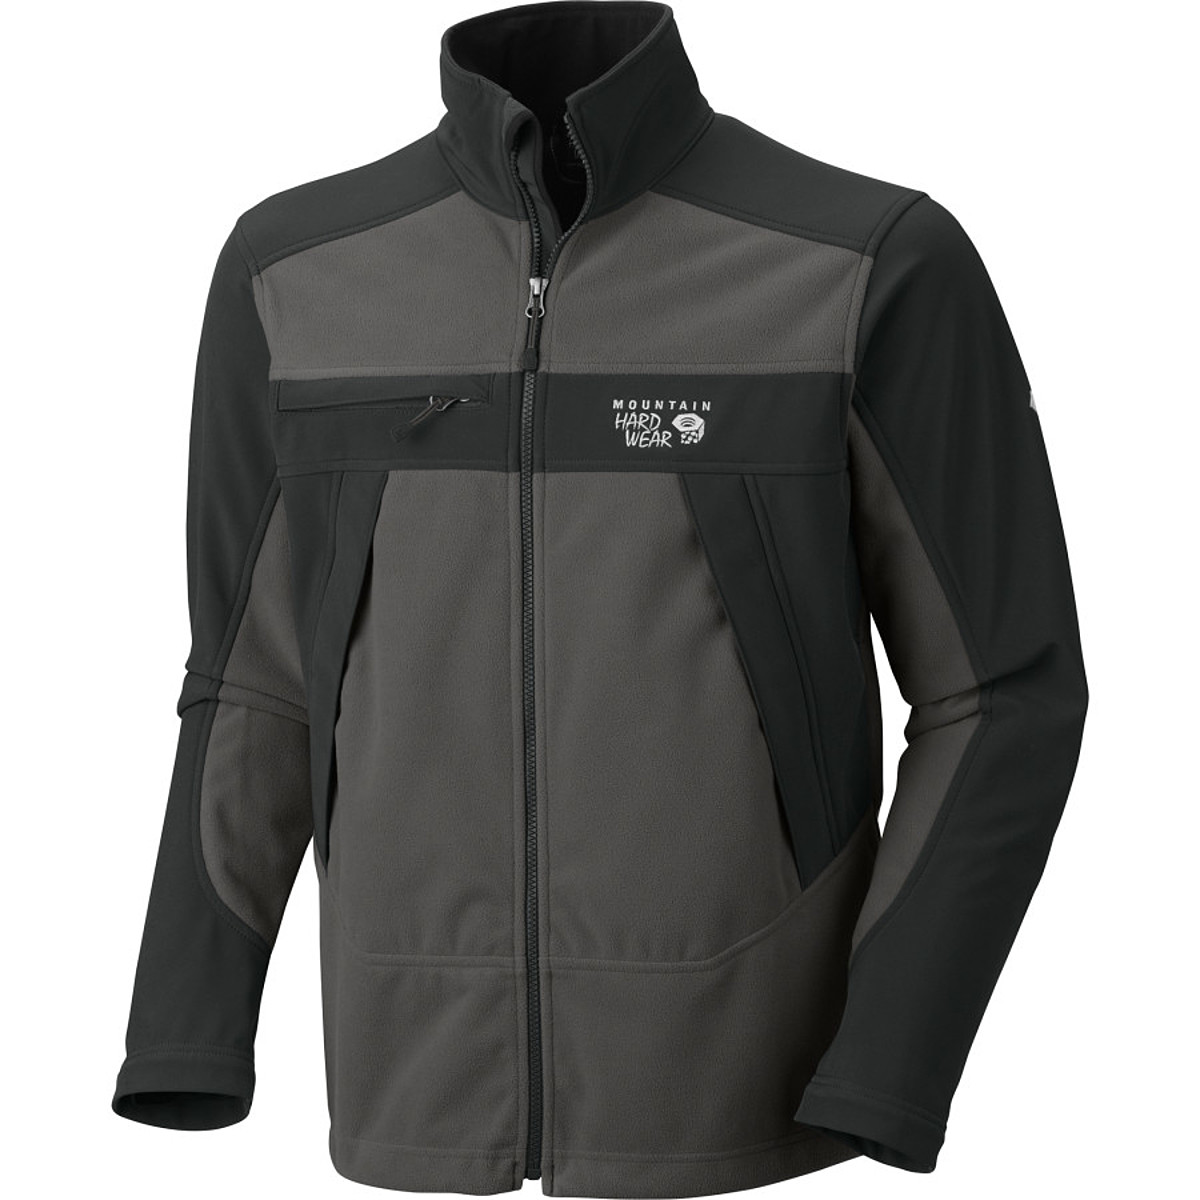 Mountain Hardwear Windstopper Tech Jacket Reviews